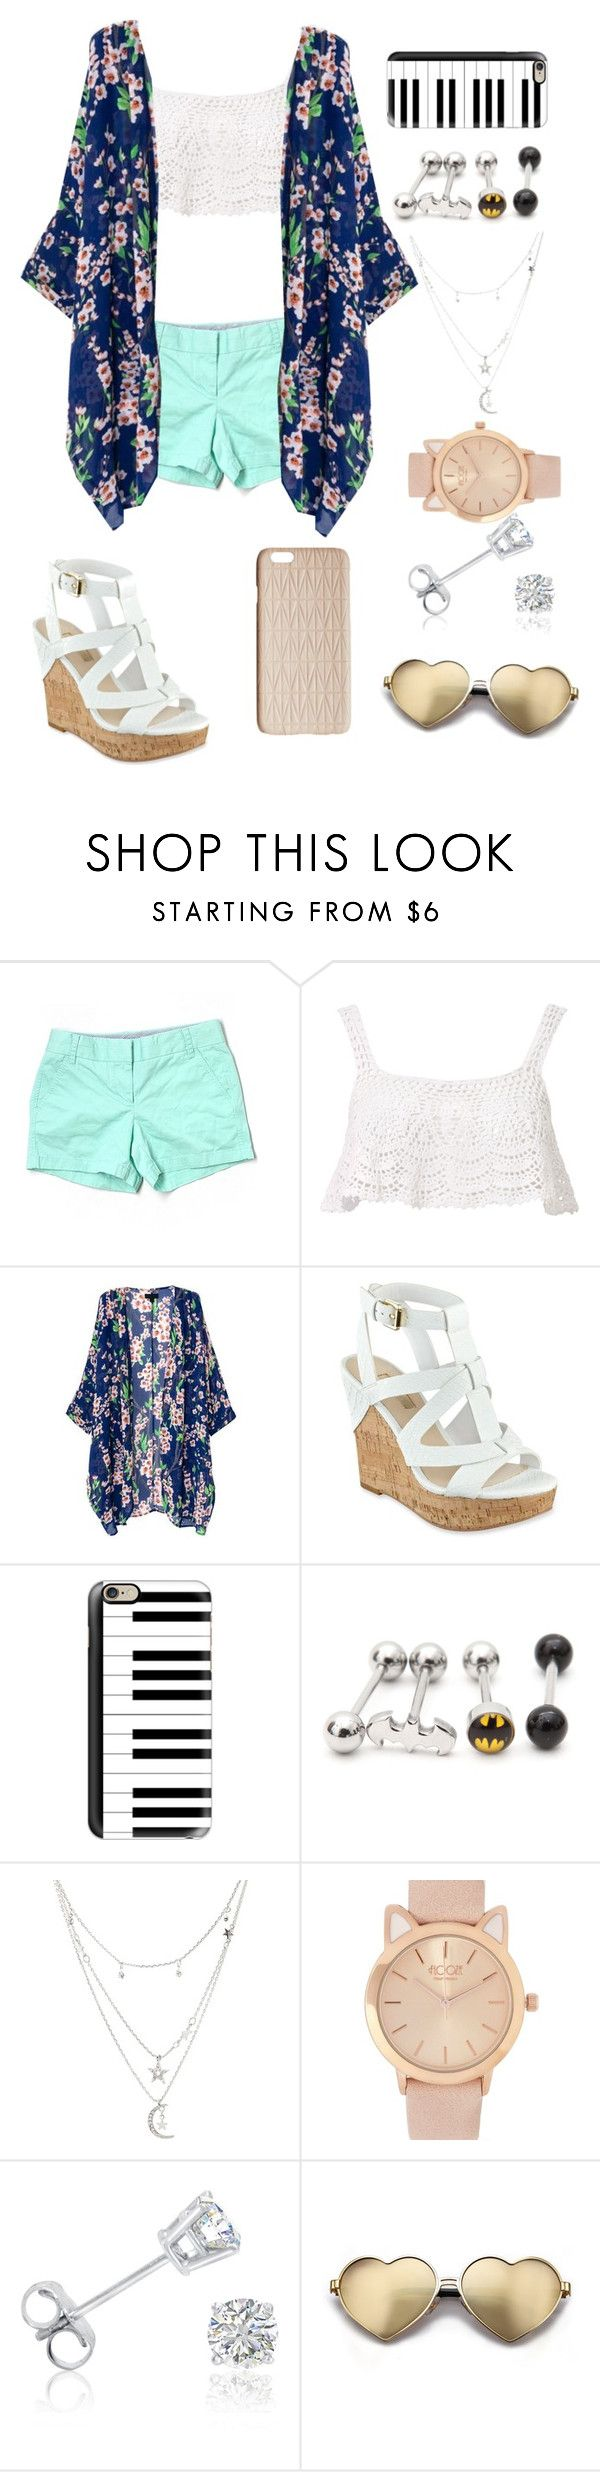 """Girly summer"" by to-crazy-for-you-now-backup ❤ liked on Polyvore featuring J.Crew, Beauty & The Beach, GUESS, Casetify, Charlotte Russe, Amanda Rose Collection, Wildfox and Dagmar"